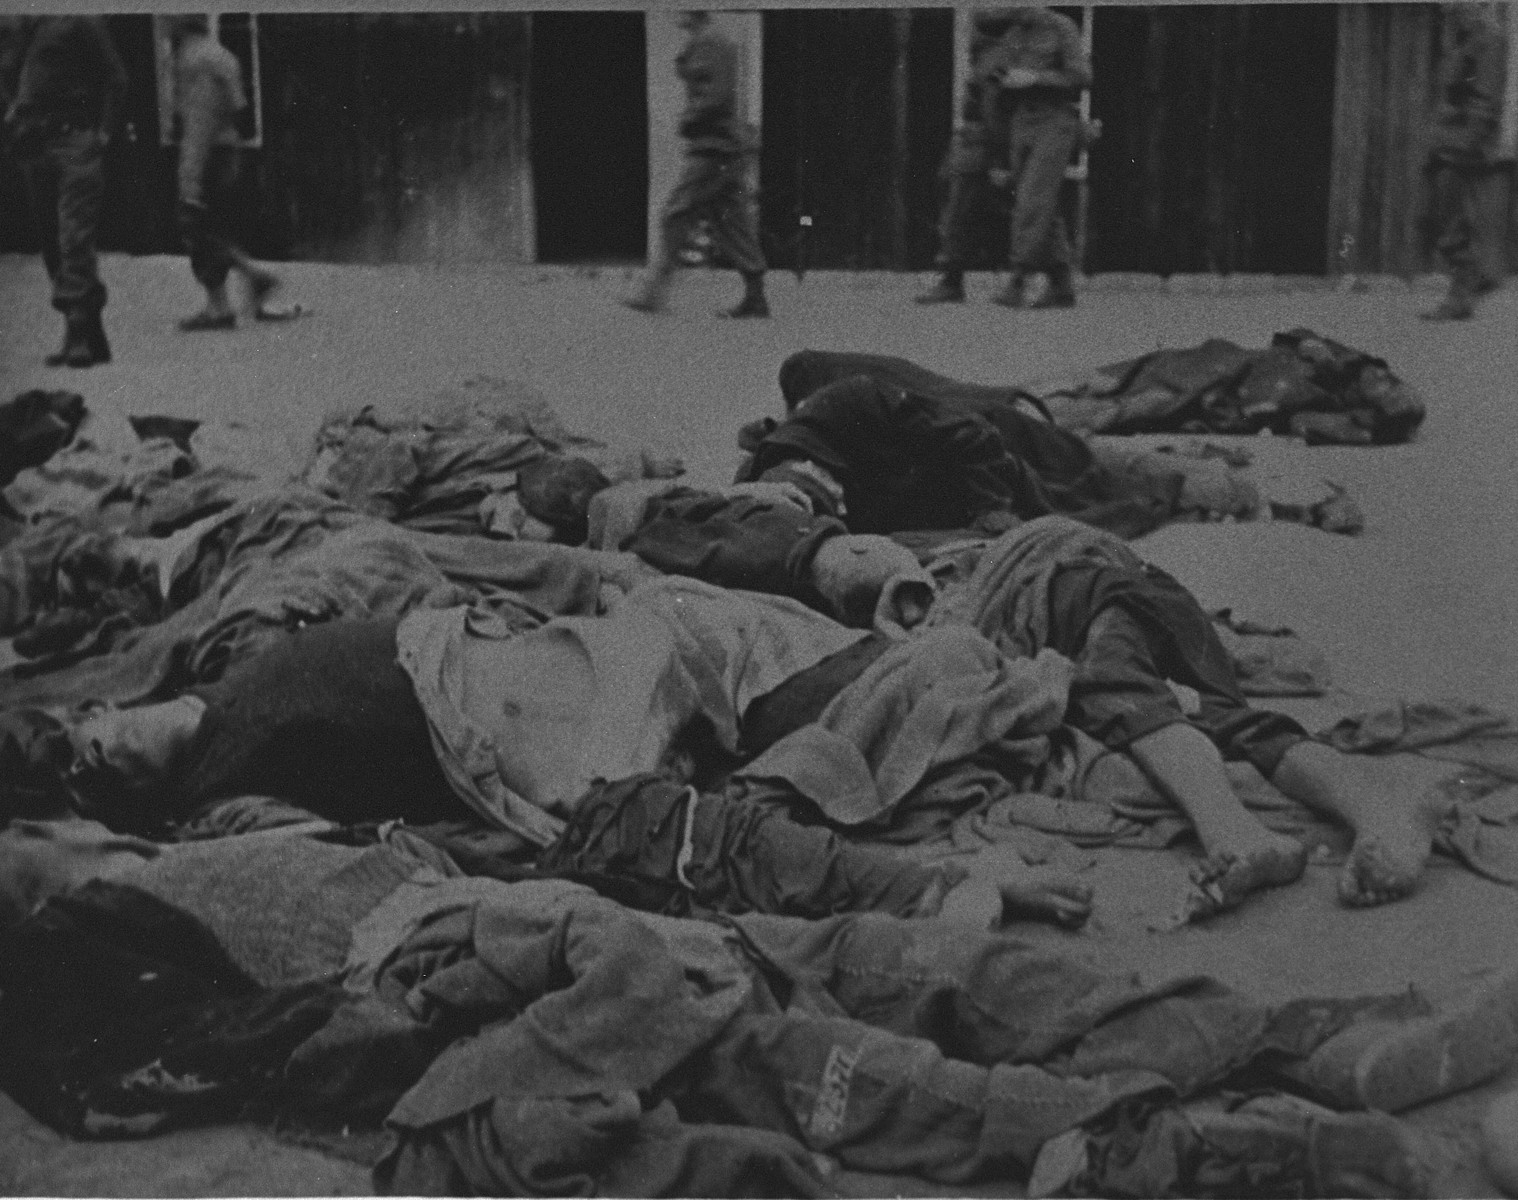 American soldiers in the background walk past corpses in Ohrdruf.